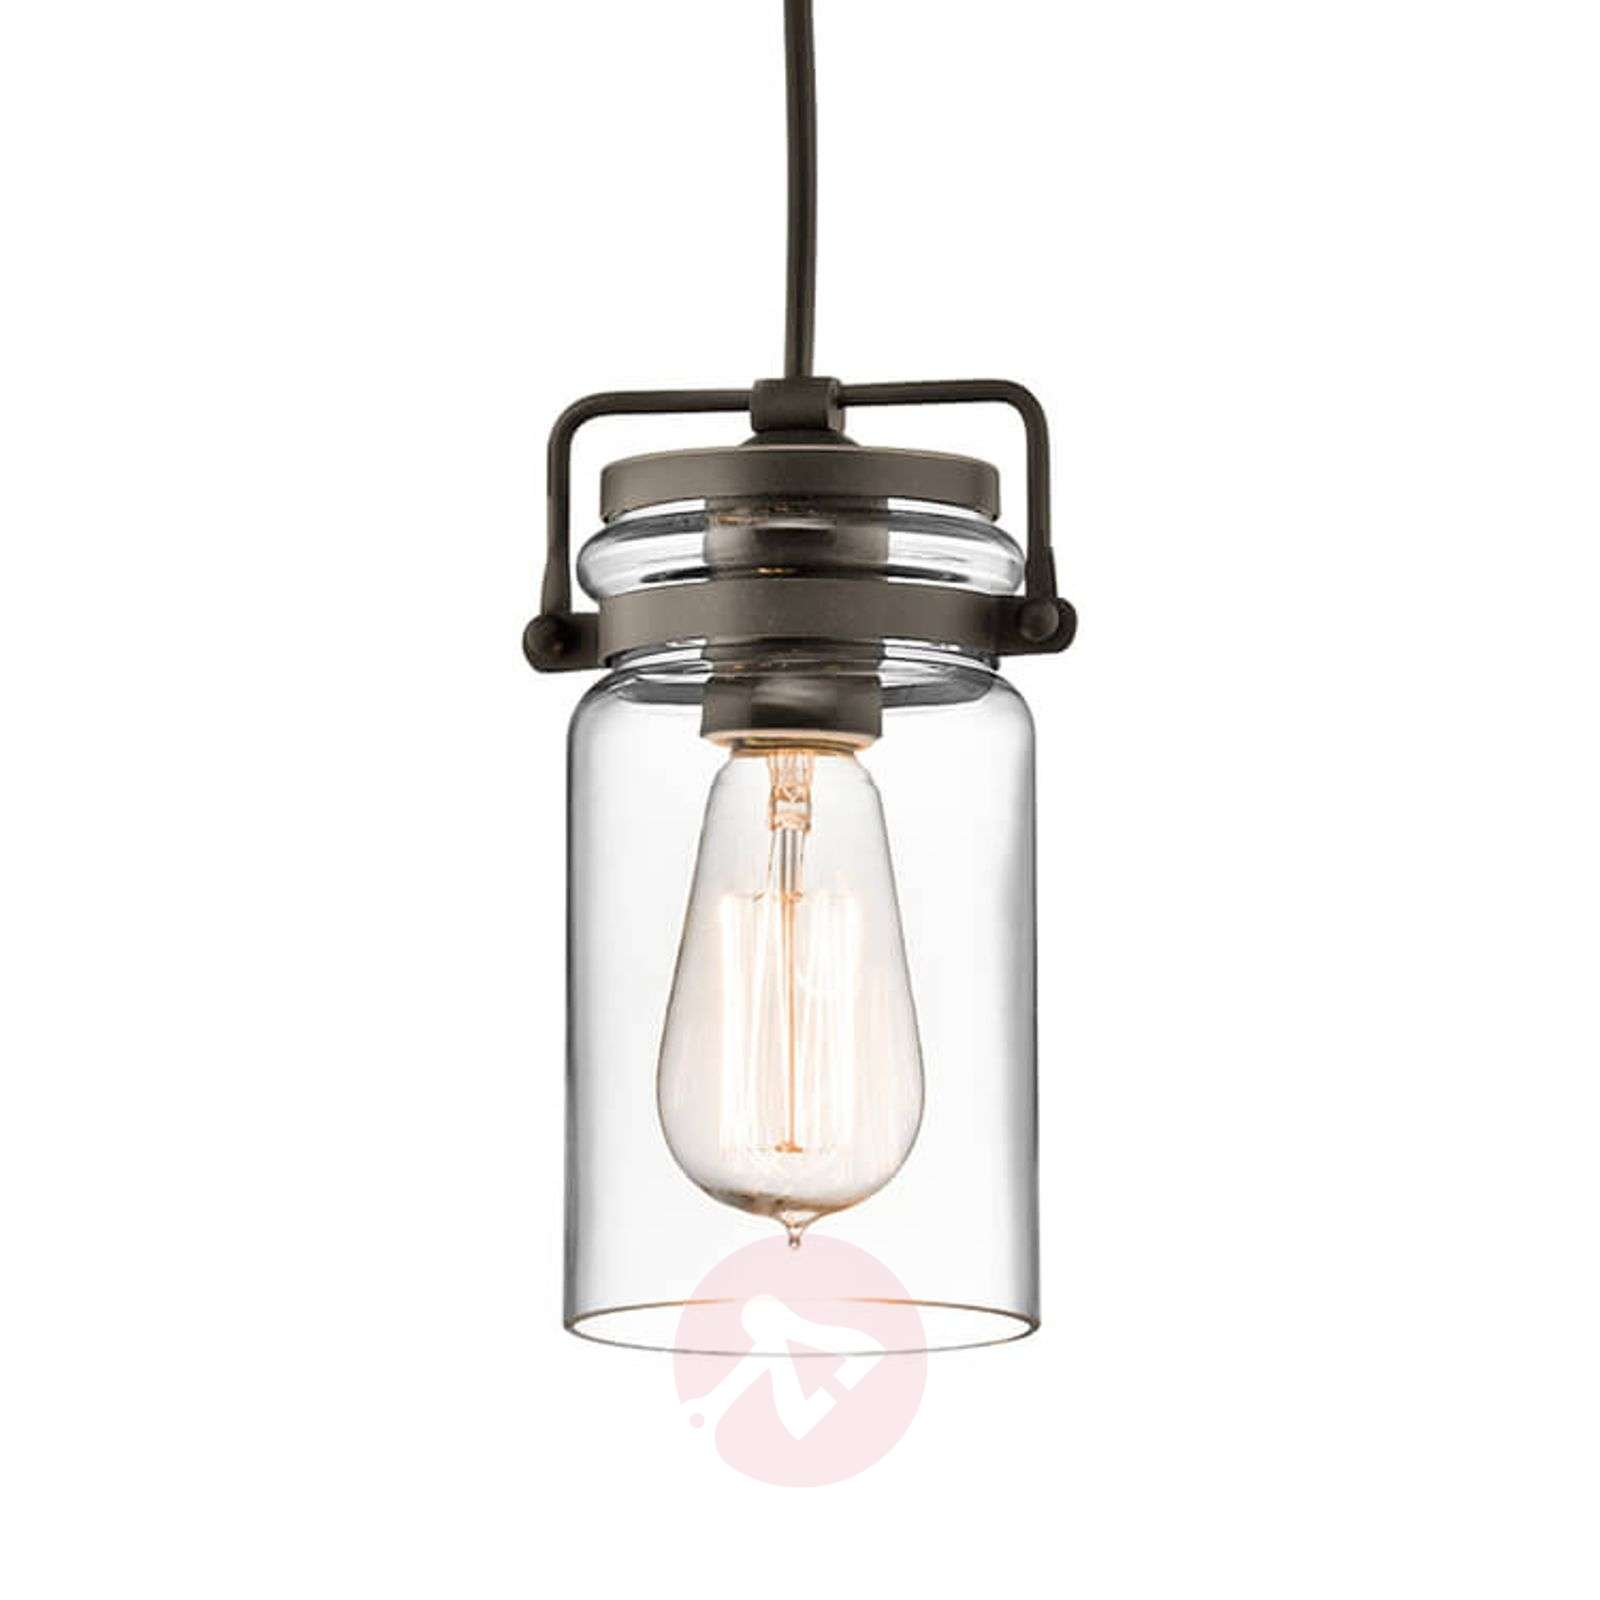 Glass hanging lamp Brinley one-bulb-3048602-01